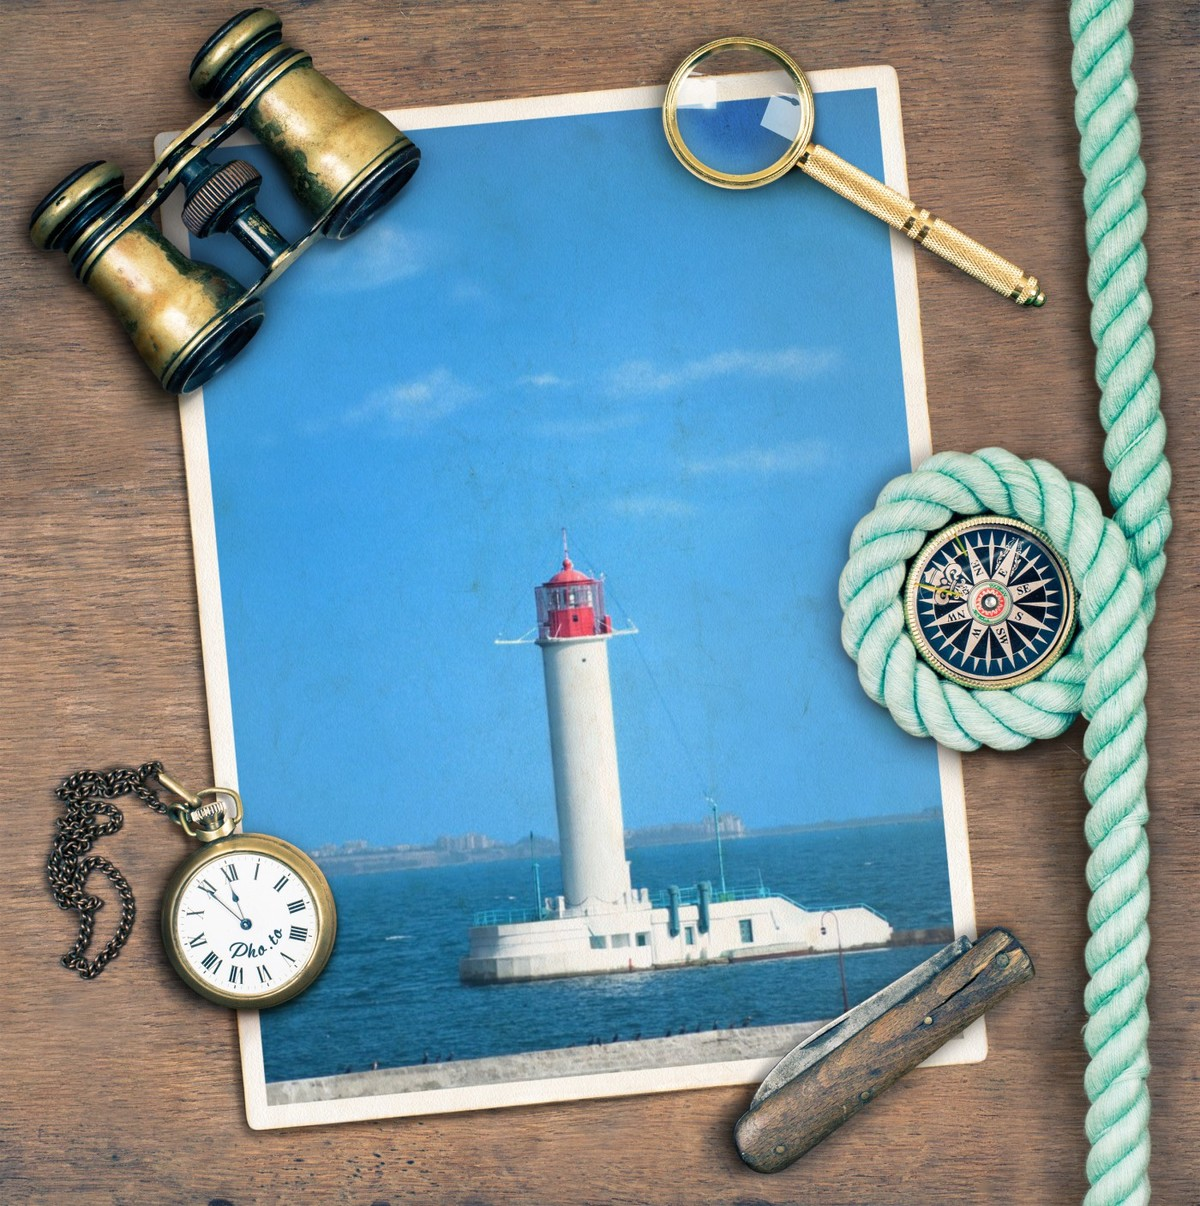 Digital ocean frame is applied to a photo of a lighthouse